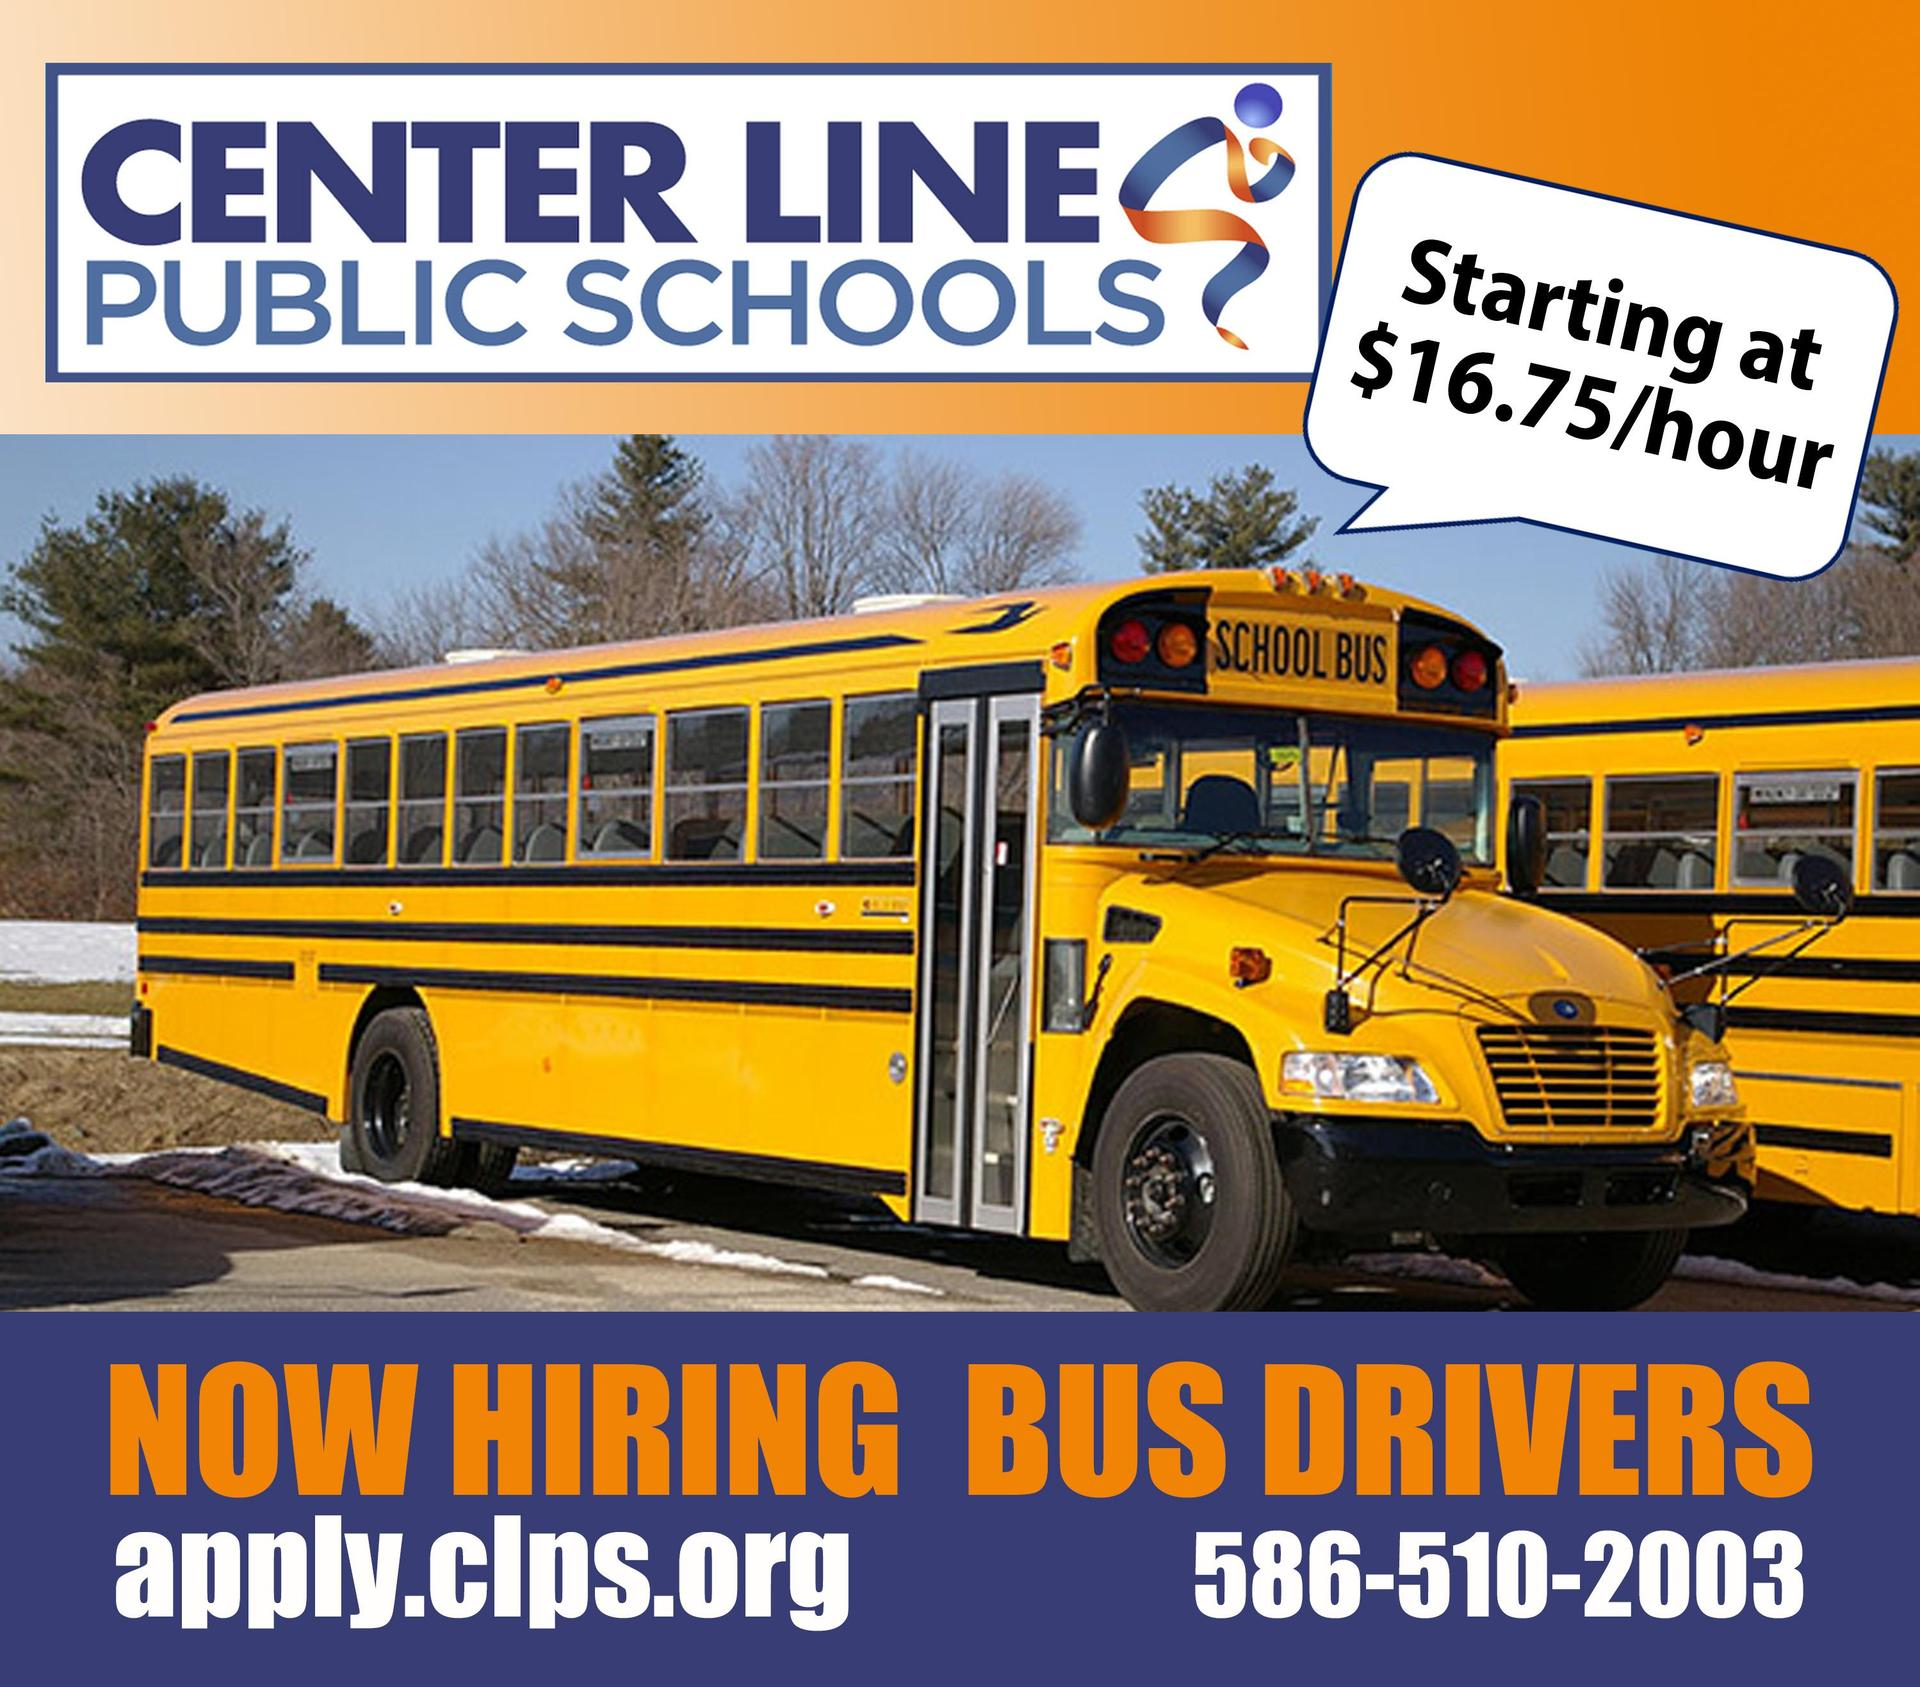 Bus drivers wanted $16.75/hour